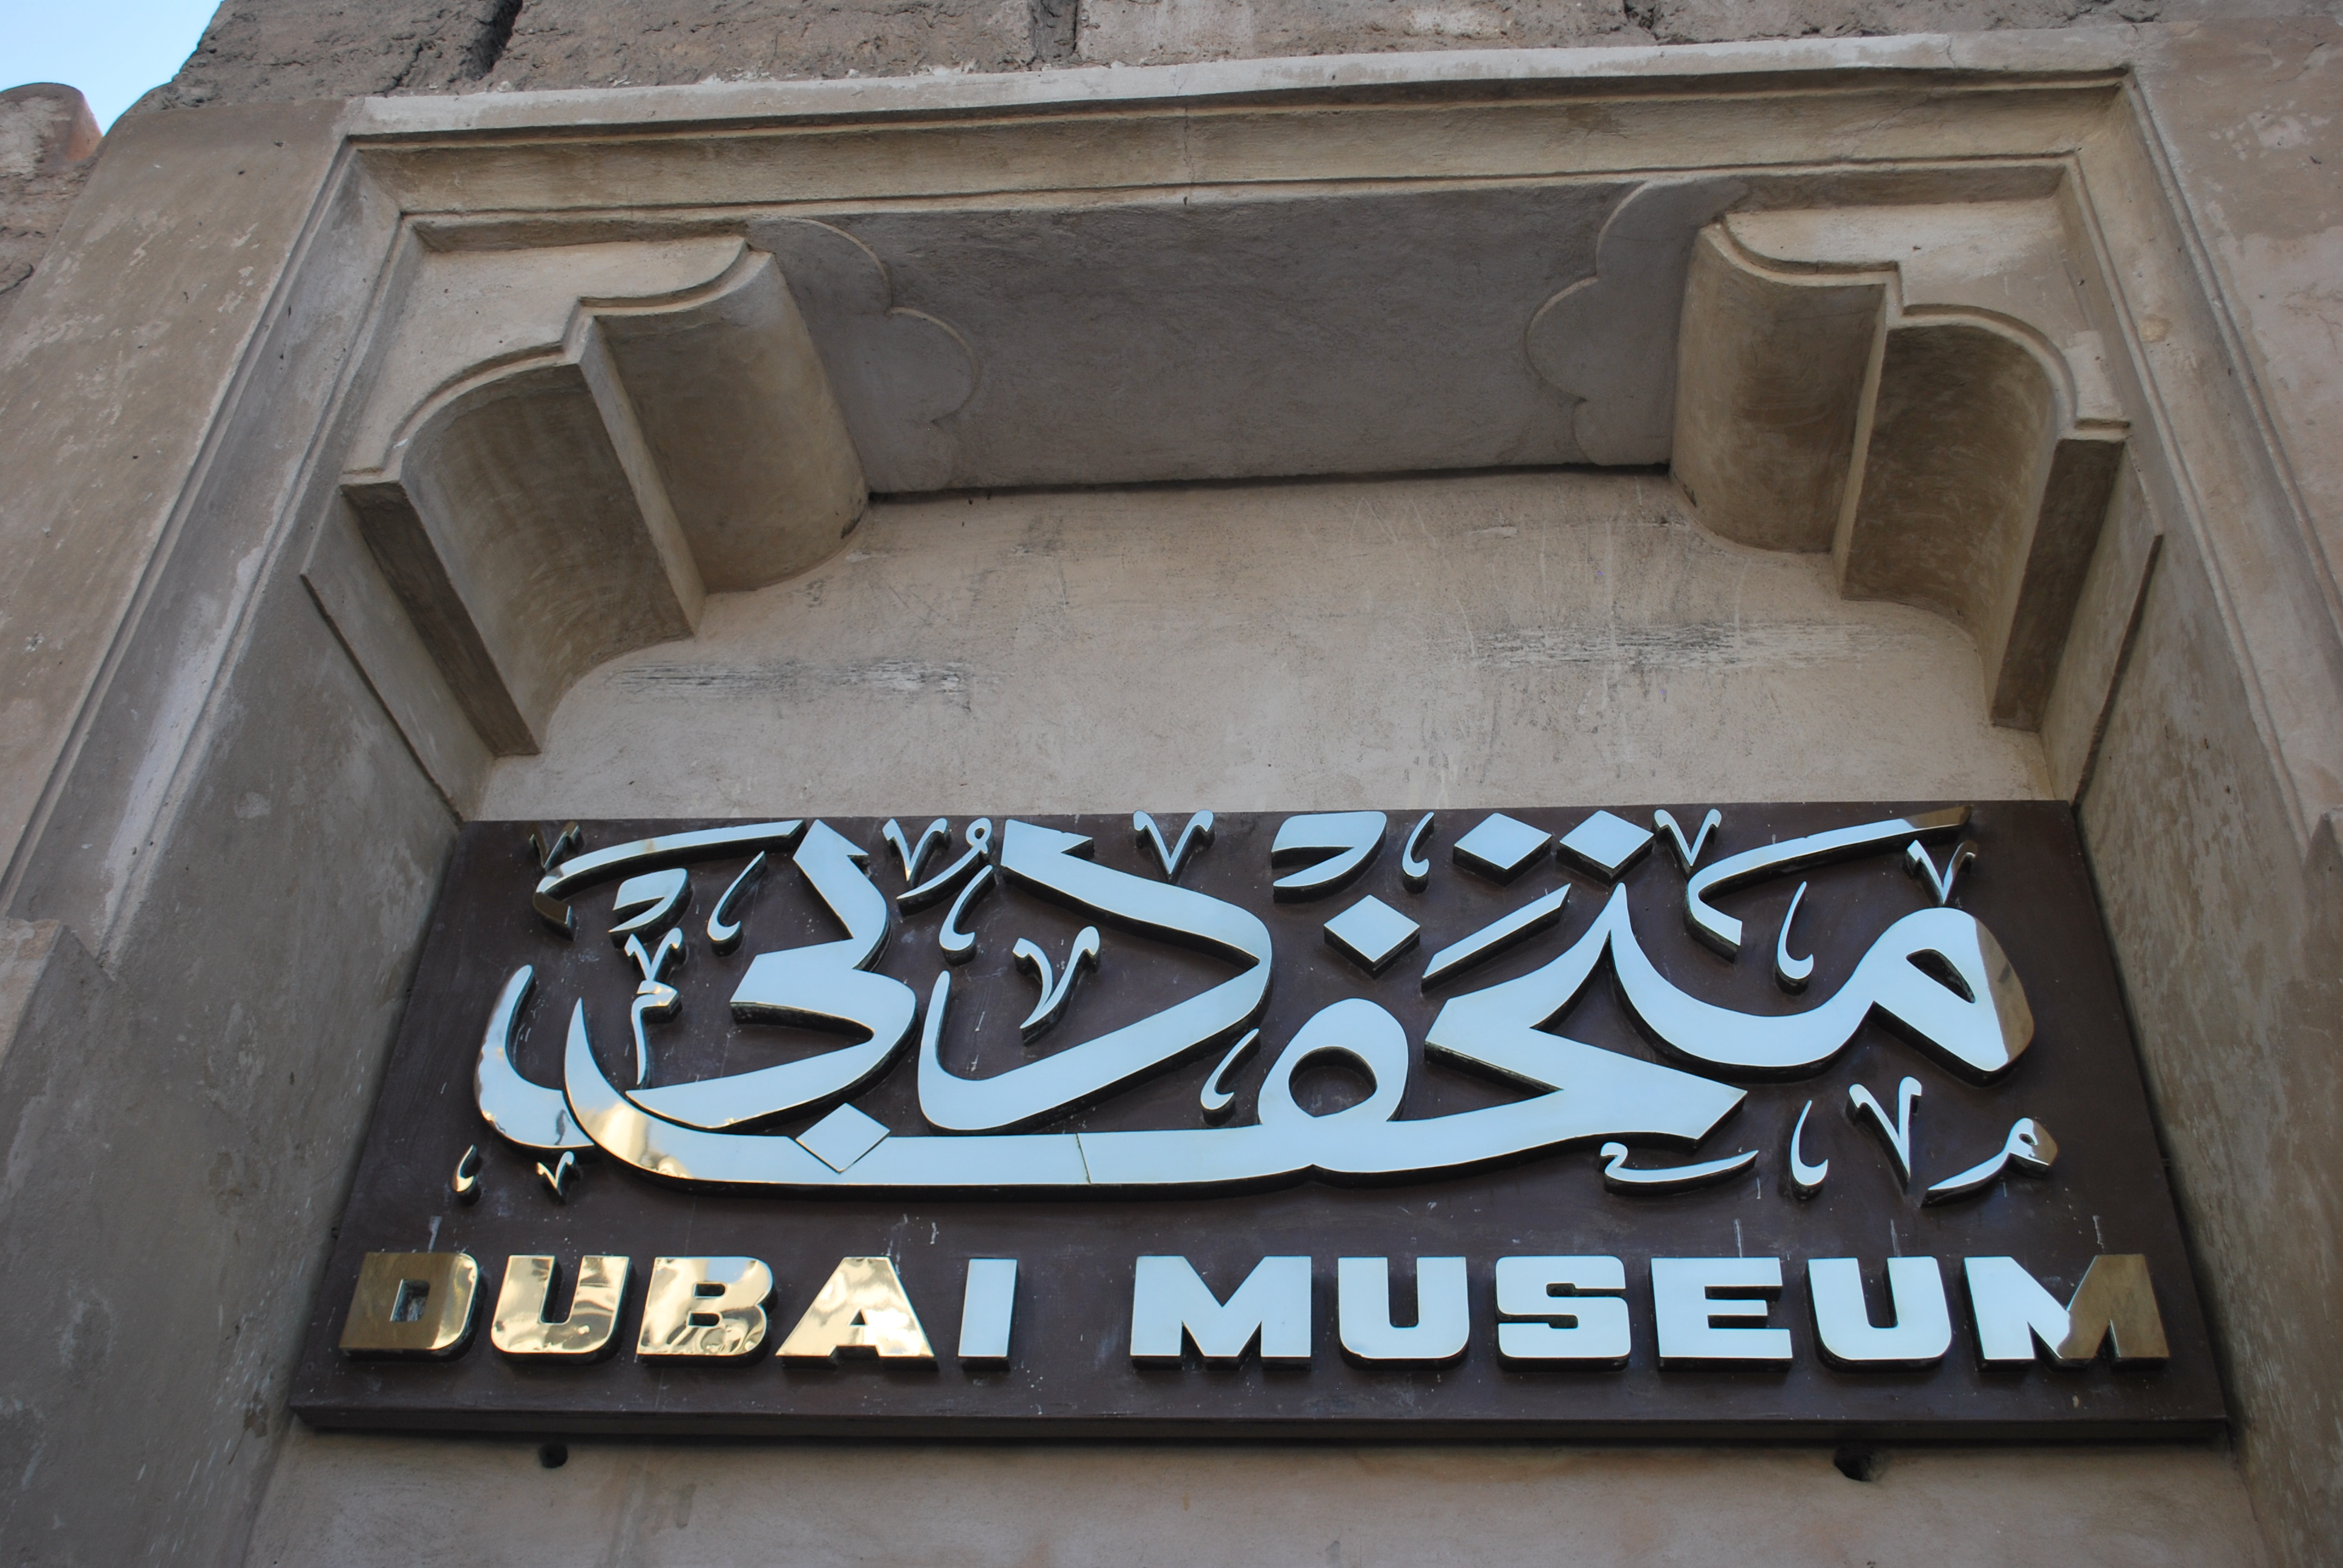 Dubai Museum sign